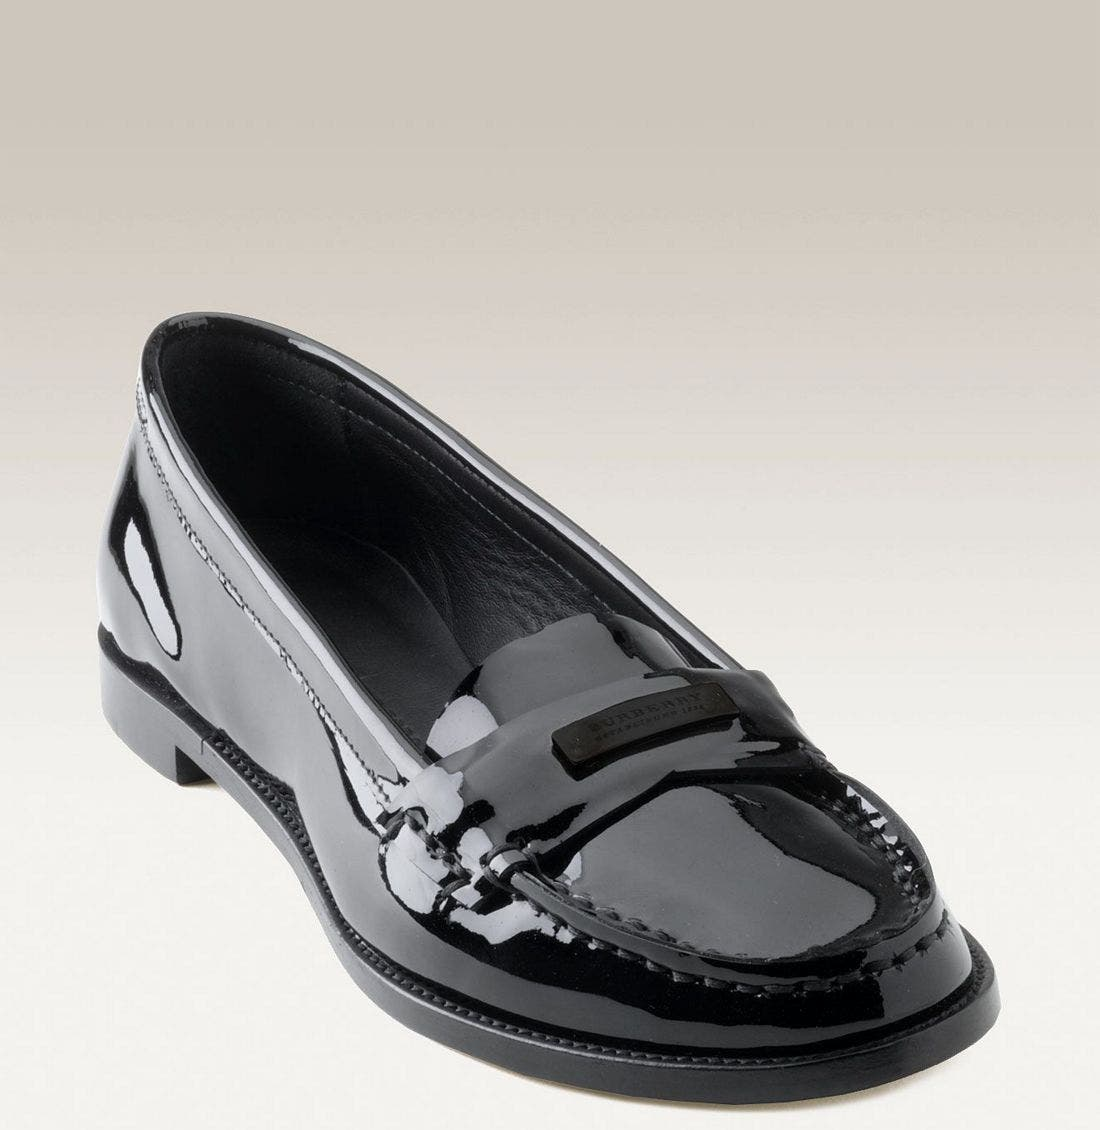 BURBERRY,                             Patent Leather Loafer,                             Main thumbnail 1, color,                             001